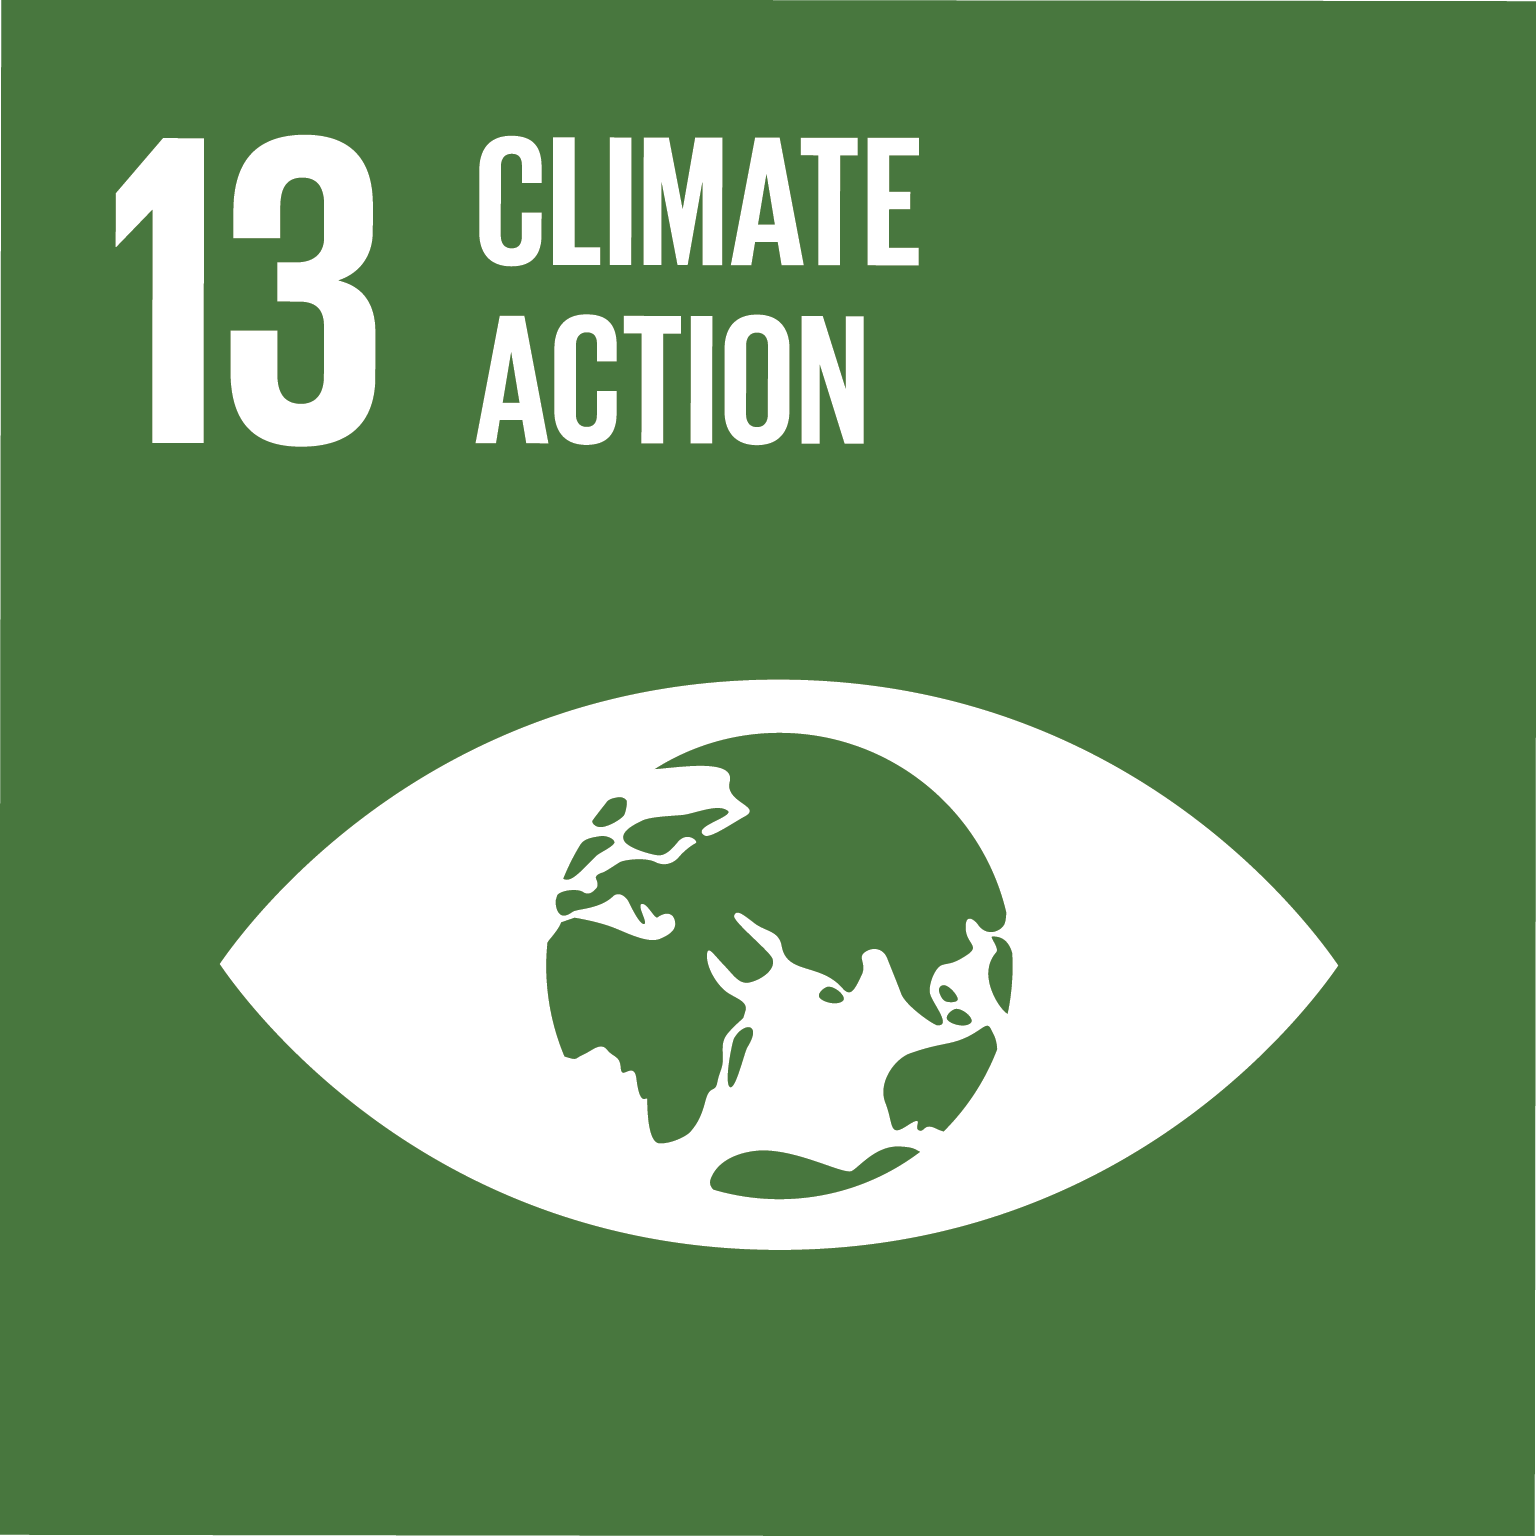 Climate Action (13)